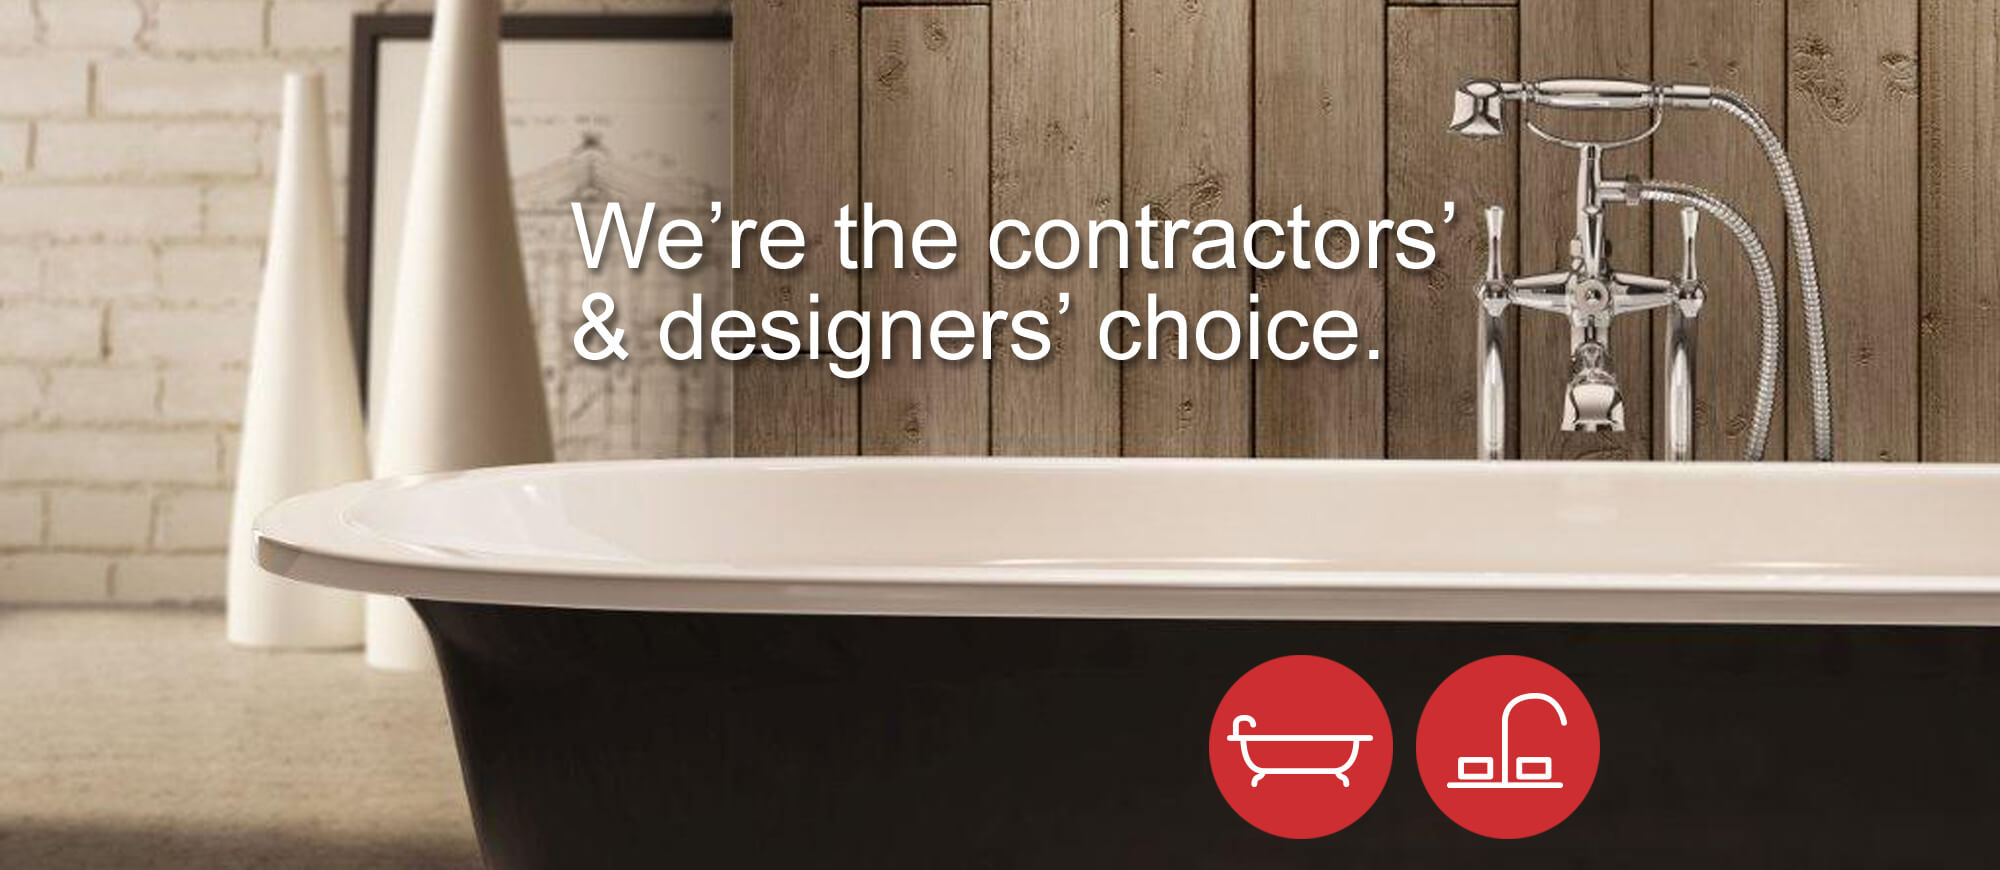 contractor designer choice